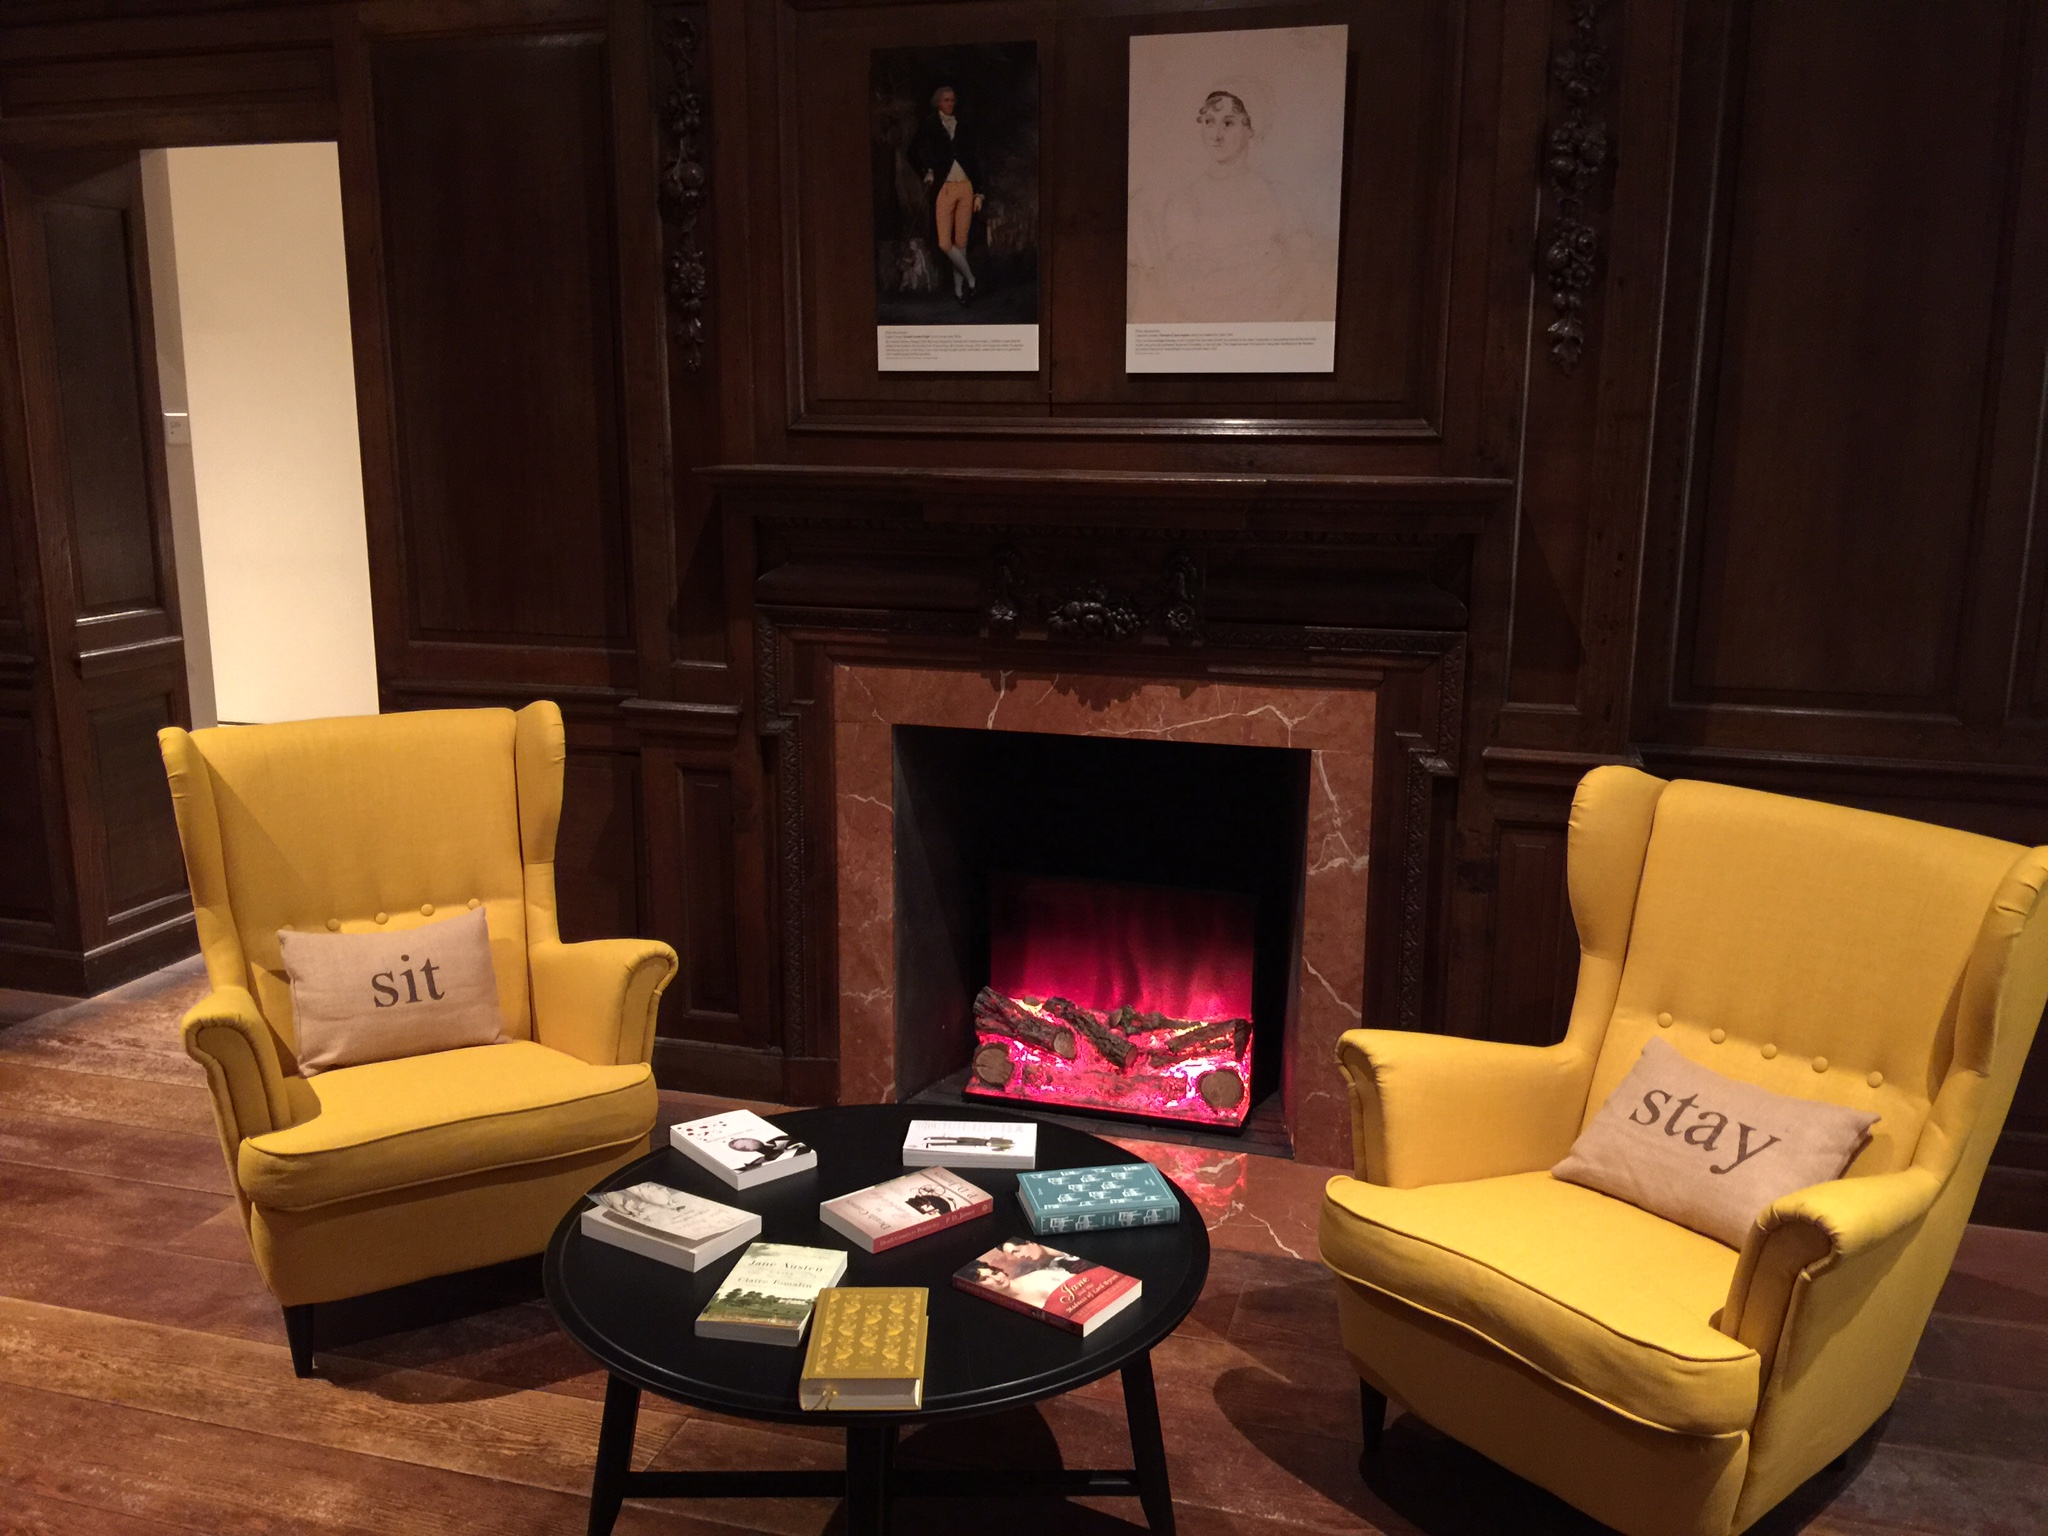 Welcome to the Jane Austen Reading Room